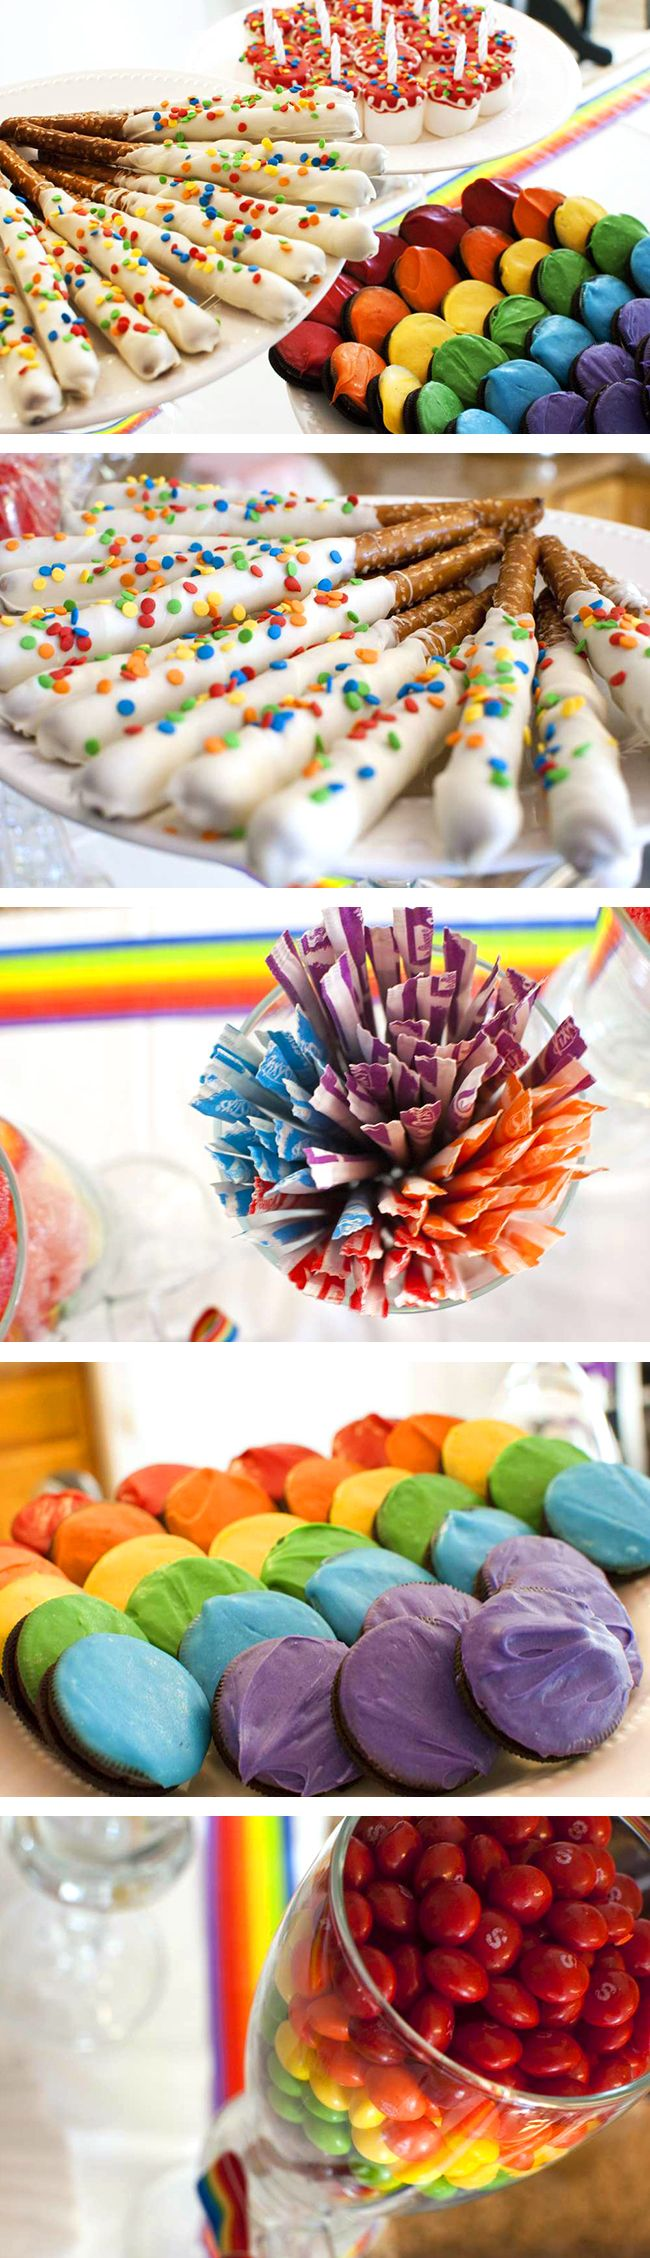 25 best ideas about rainbow theme on pinterest rainbow party themes - Bright And Pretty Rainbow Theme Birthday Party